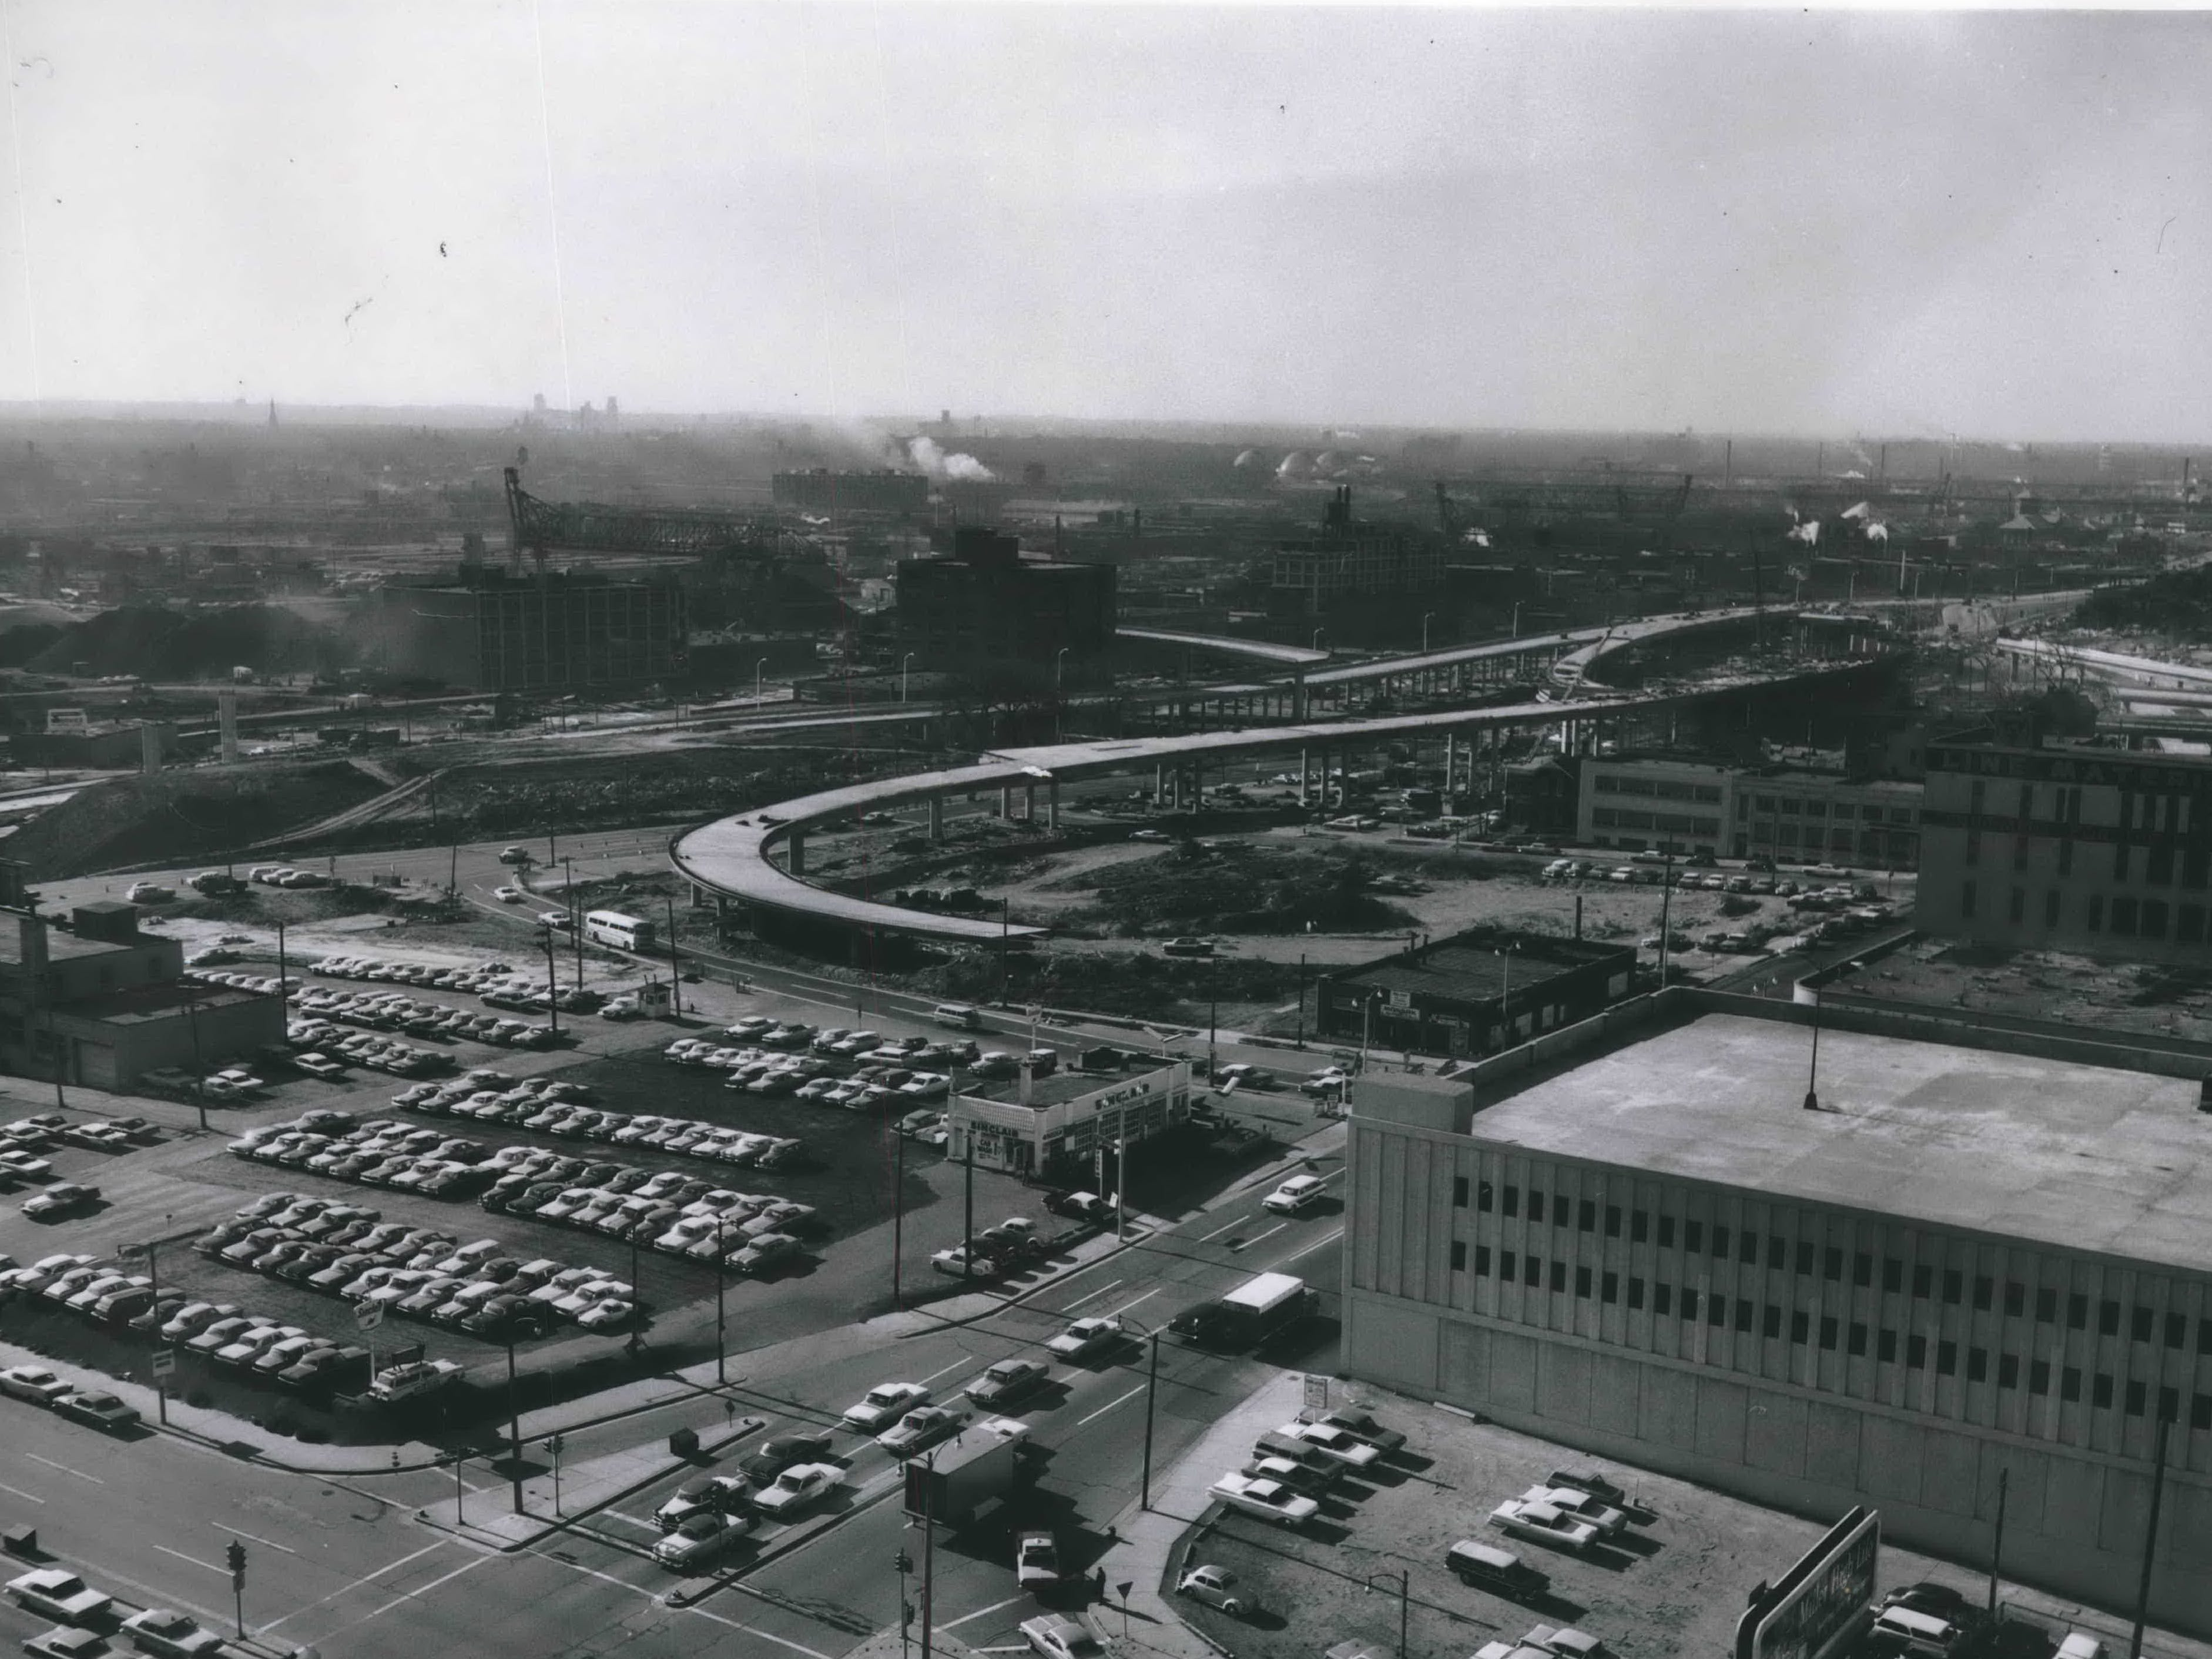 The Central Interchange, later renamed the Marquette Interchange, begins taking shape in late 1965, including the  eastbound freeway to about N. Eighth Street and off-ramps to North Seventh and Fifth streets. Another ramp will lead to North 13th Street and West St. Paul Avenue. The ramps will mean new access to downtown. This was published in the Nov. 26, 1965, Milwaukee Sentinel.